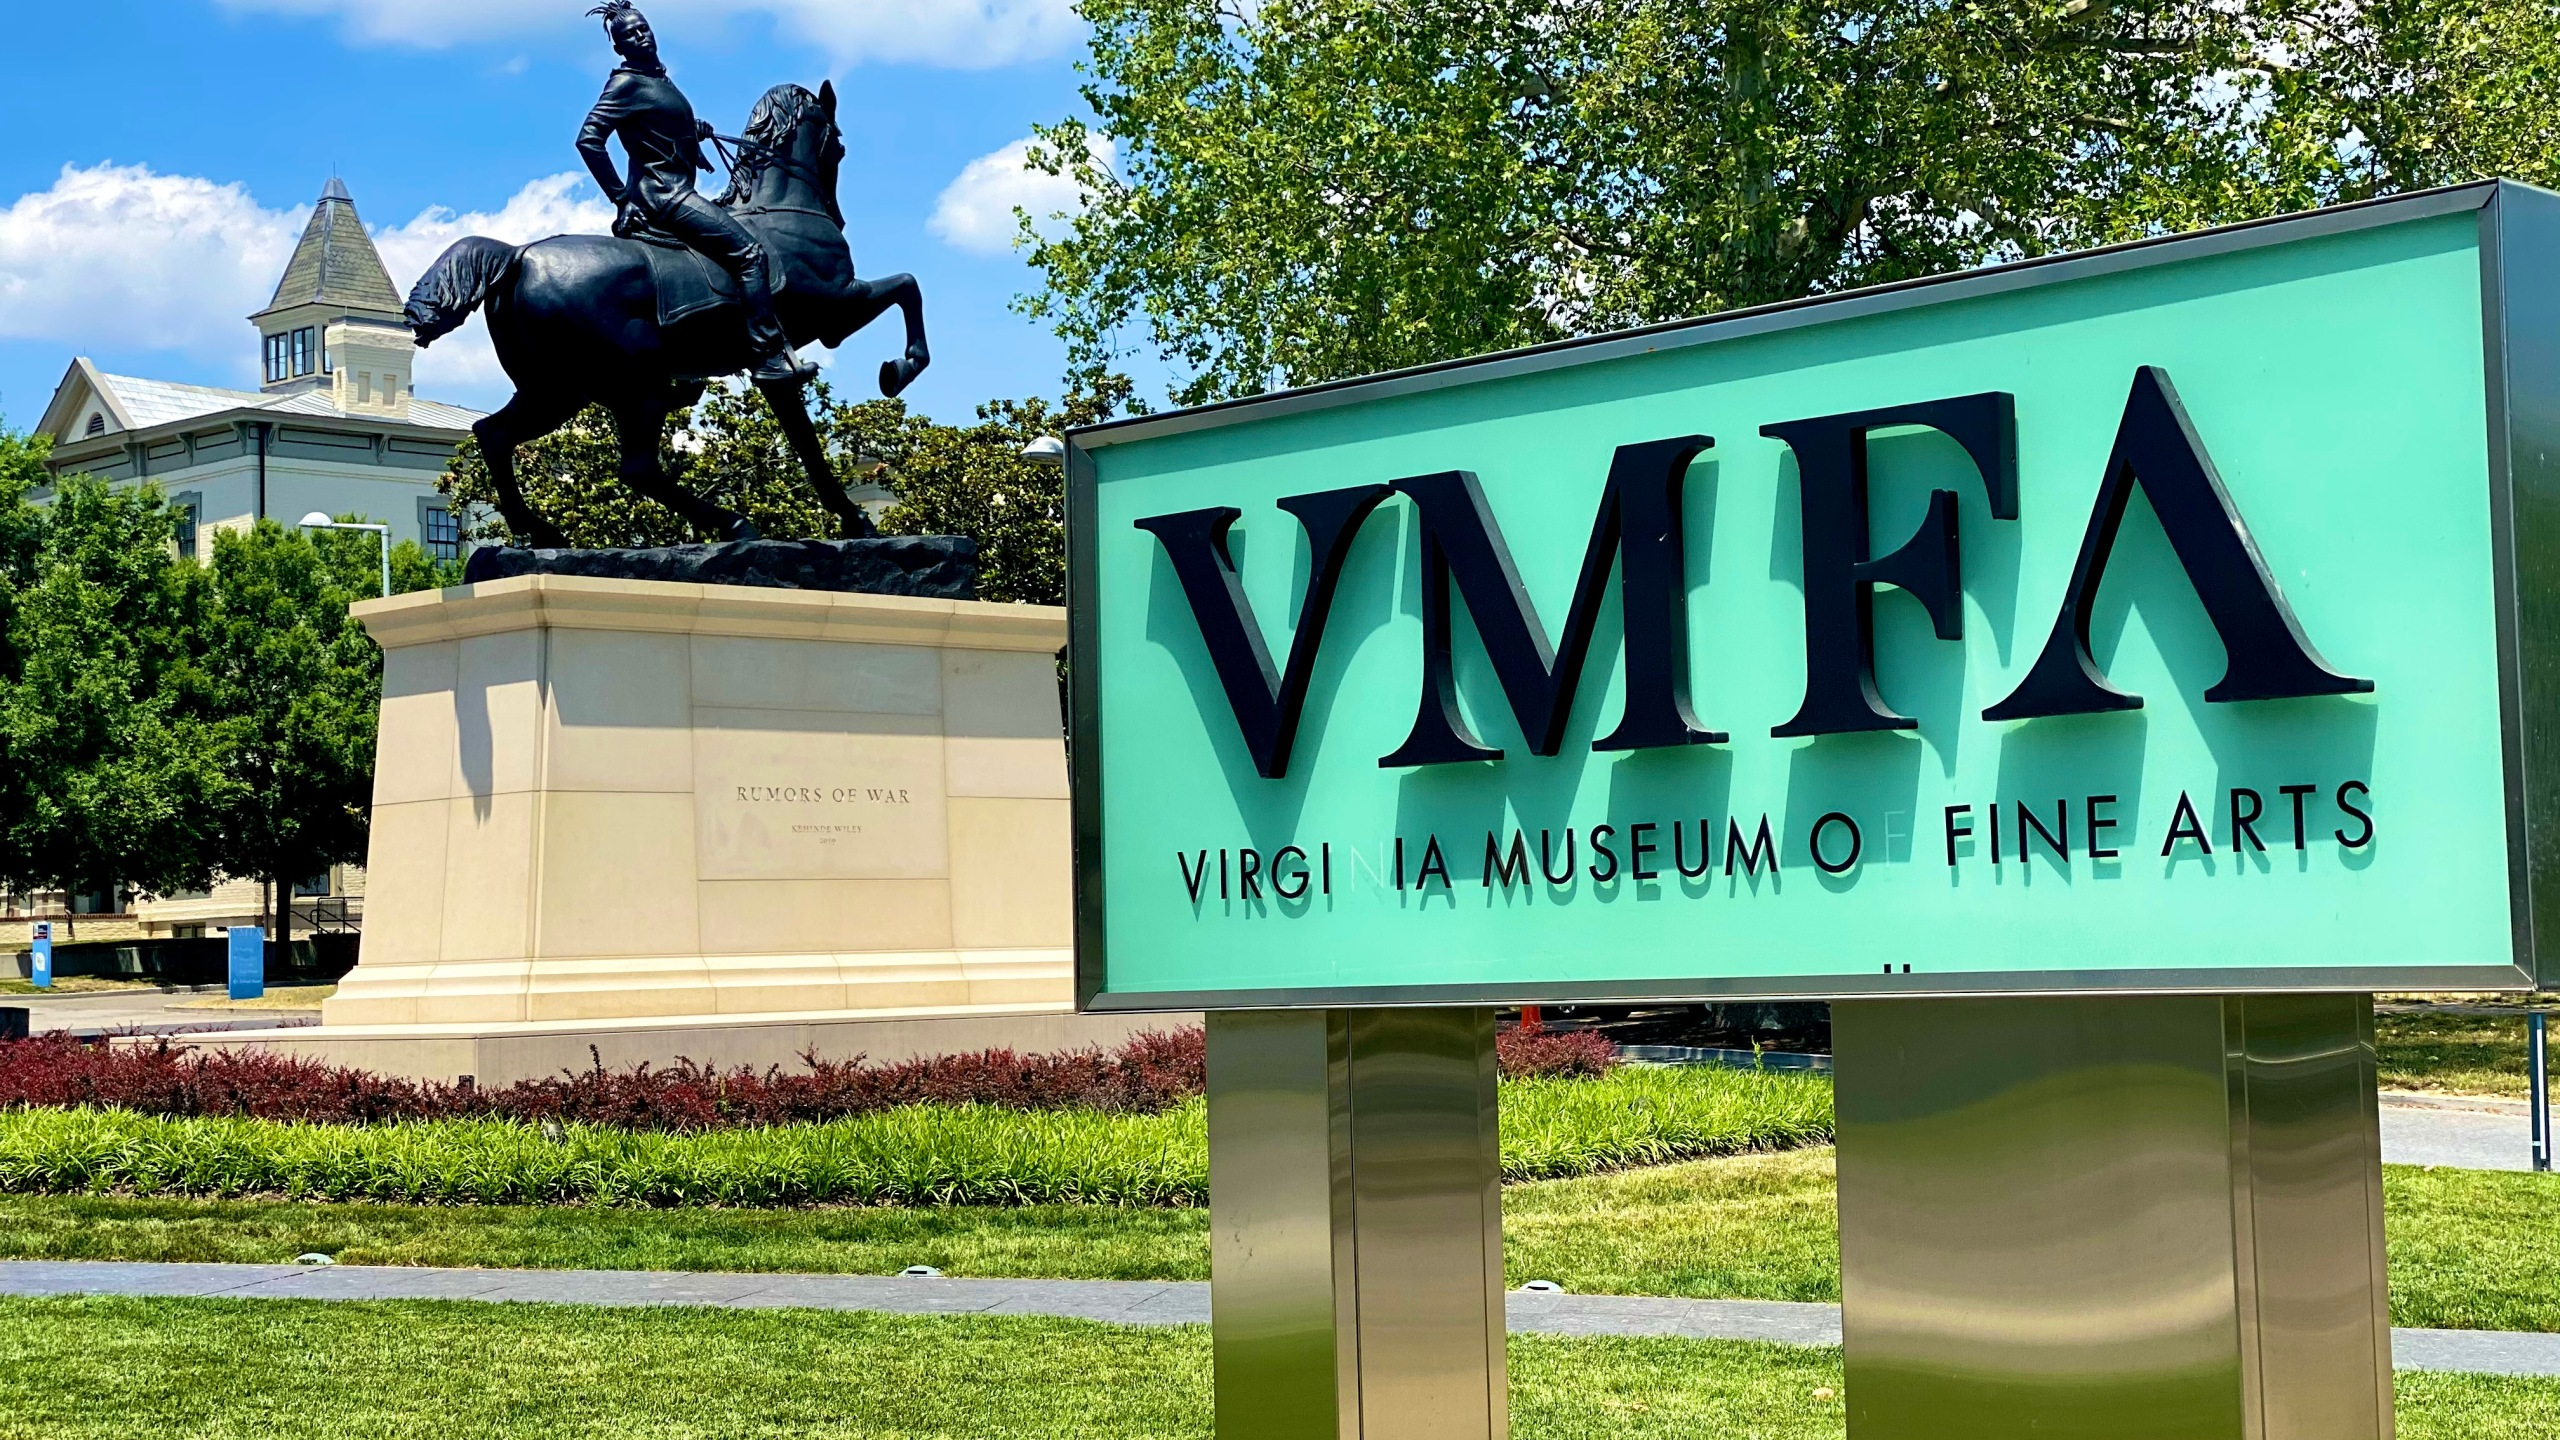 Virginina Museum of Fine Arts sign with the Rumors of War statue in the background